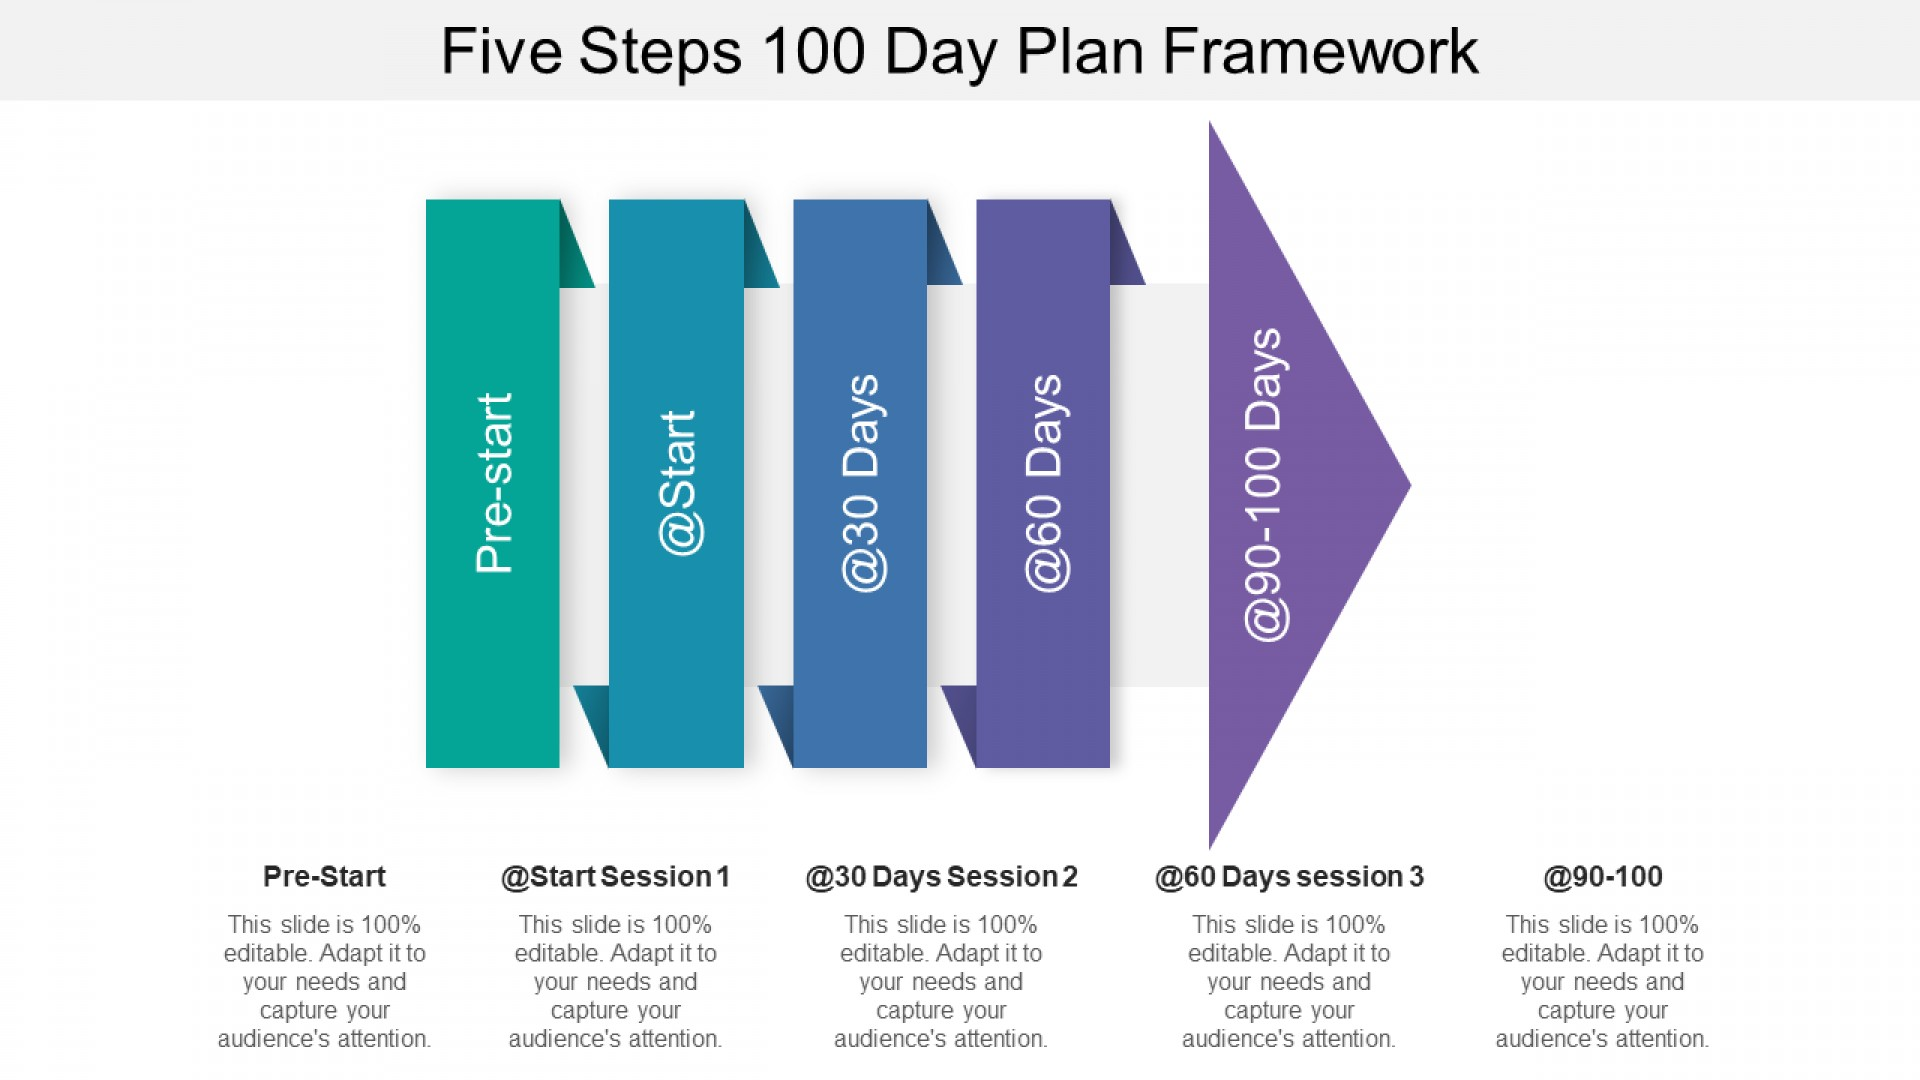 002 Formidable 100 Day Planning Template High Definition  Plan Powerpoint Free New Job Example1920